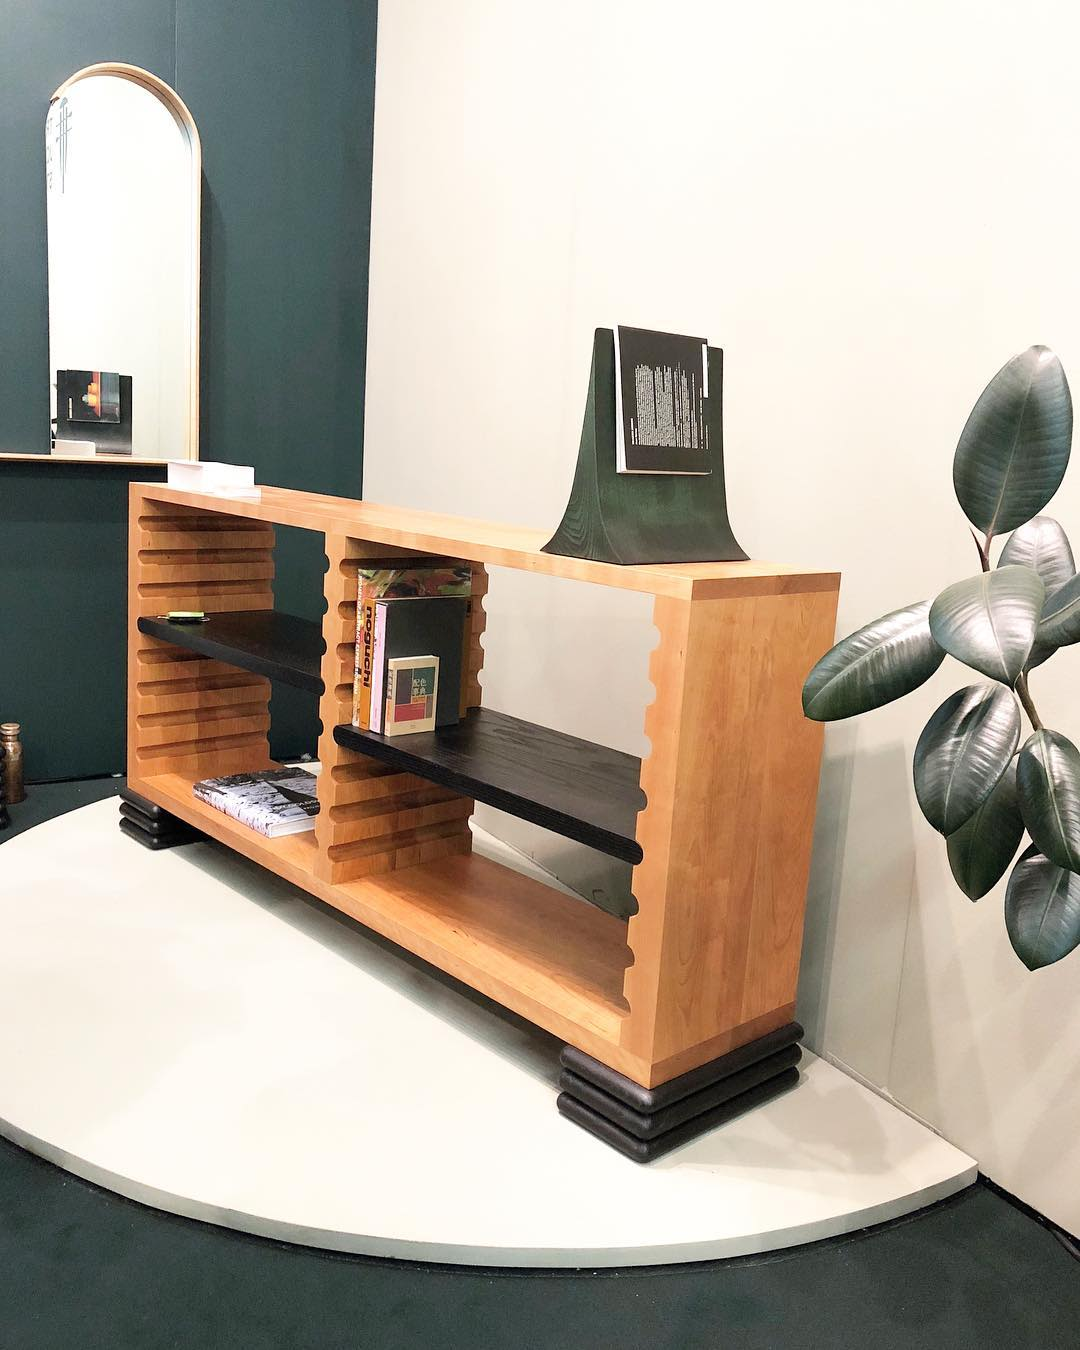 Furniture by Trey Jones Studio seen at Piers 92/94, New York - The Ridge Bookcase